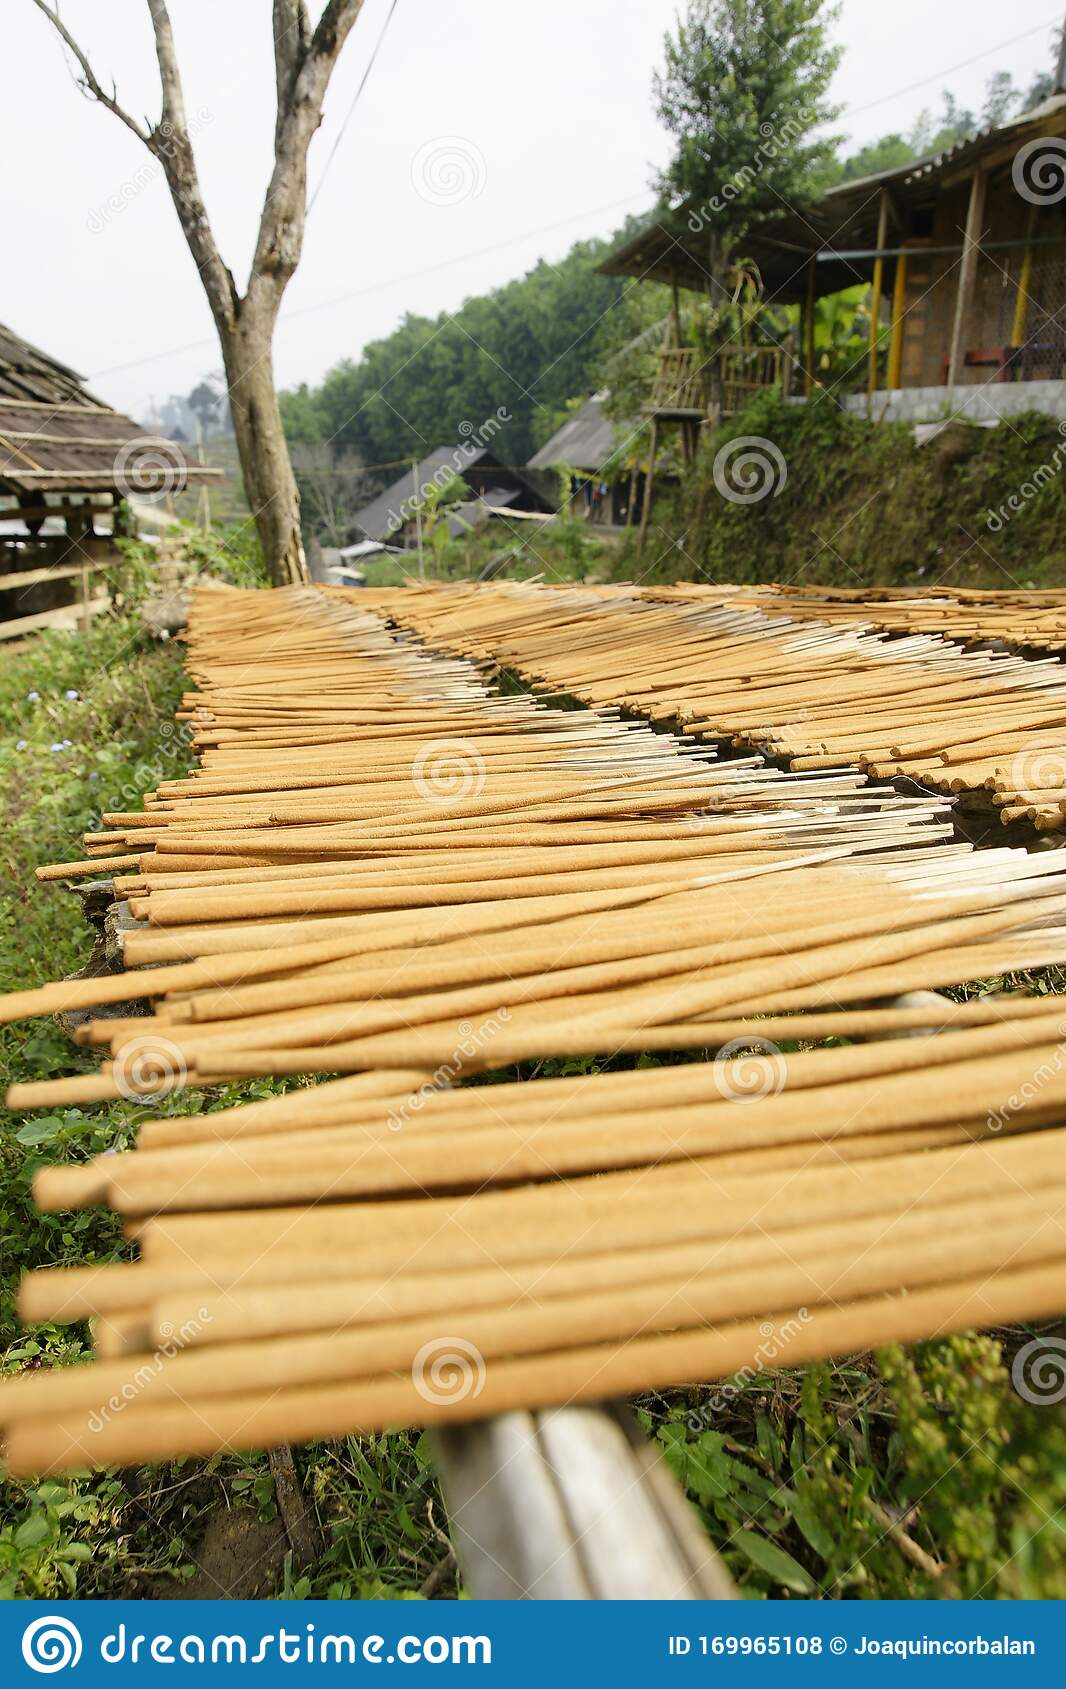 Homemade Incense Sticks Drying Stock Photo Image Of Home Natural 169965108